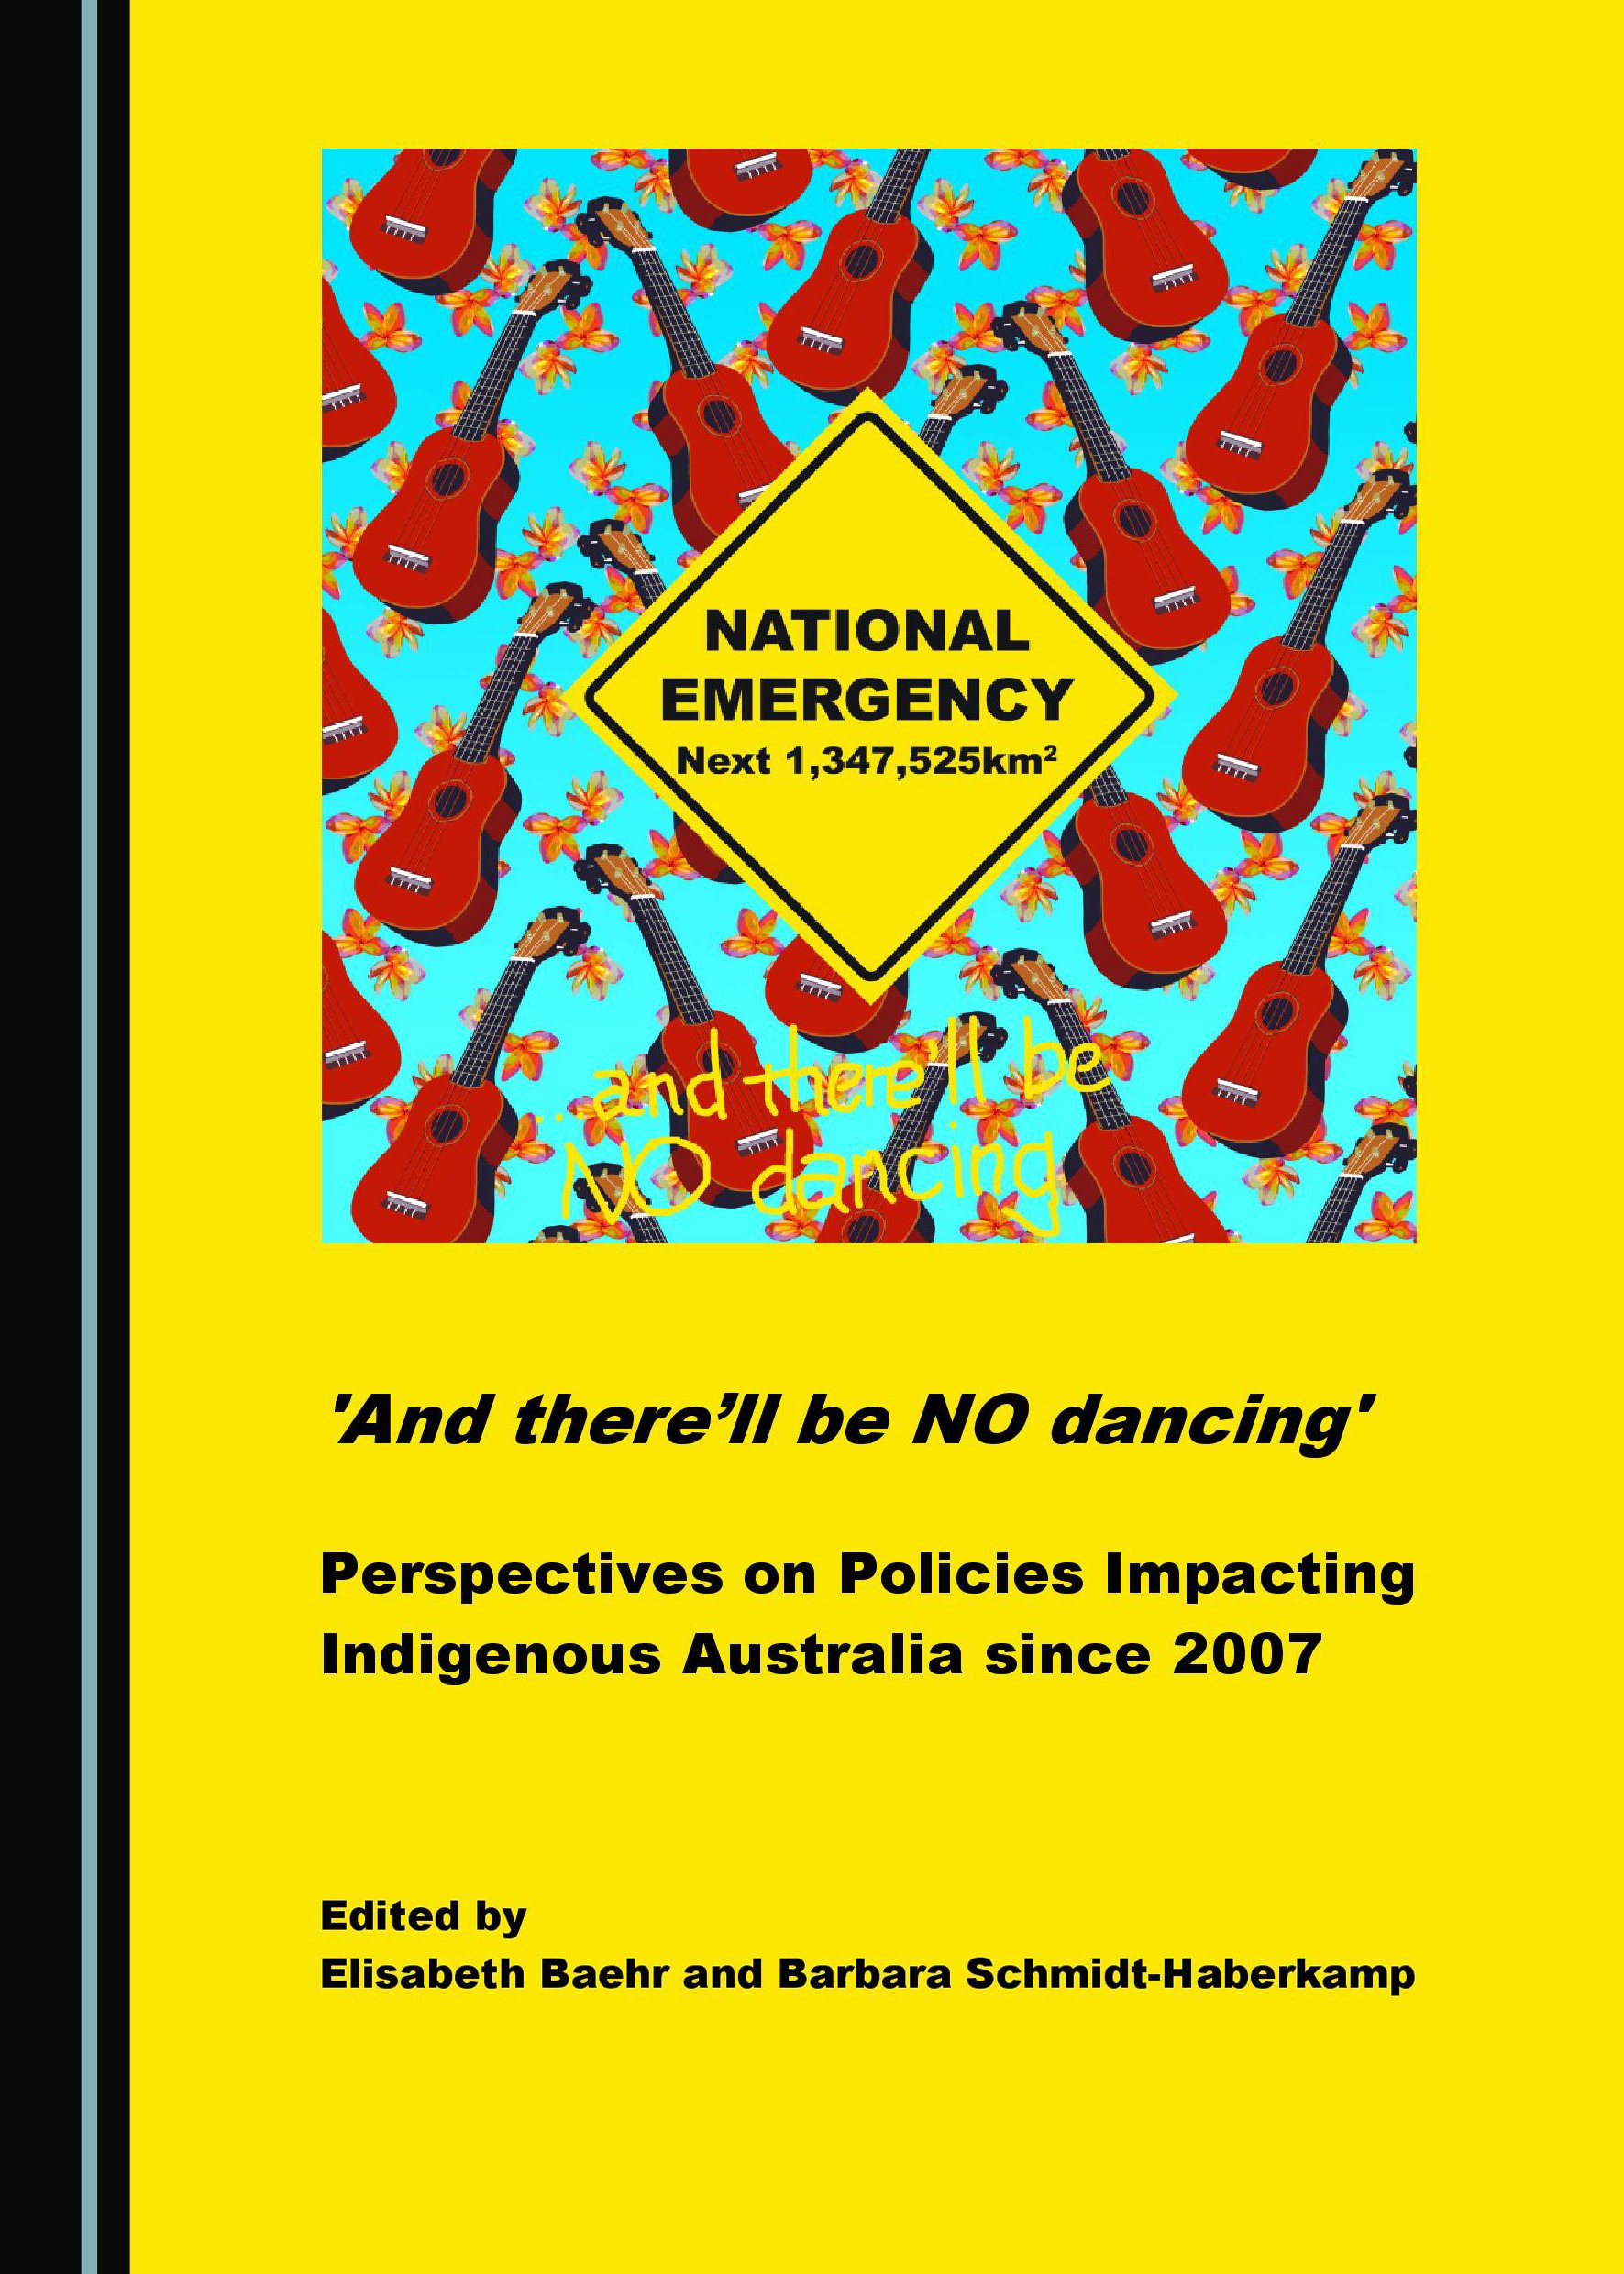 'And there'll be NO dancing': Perspectives on Policies Impacting Indigenous Australia since 2007